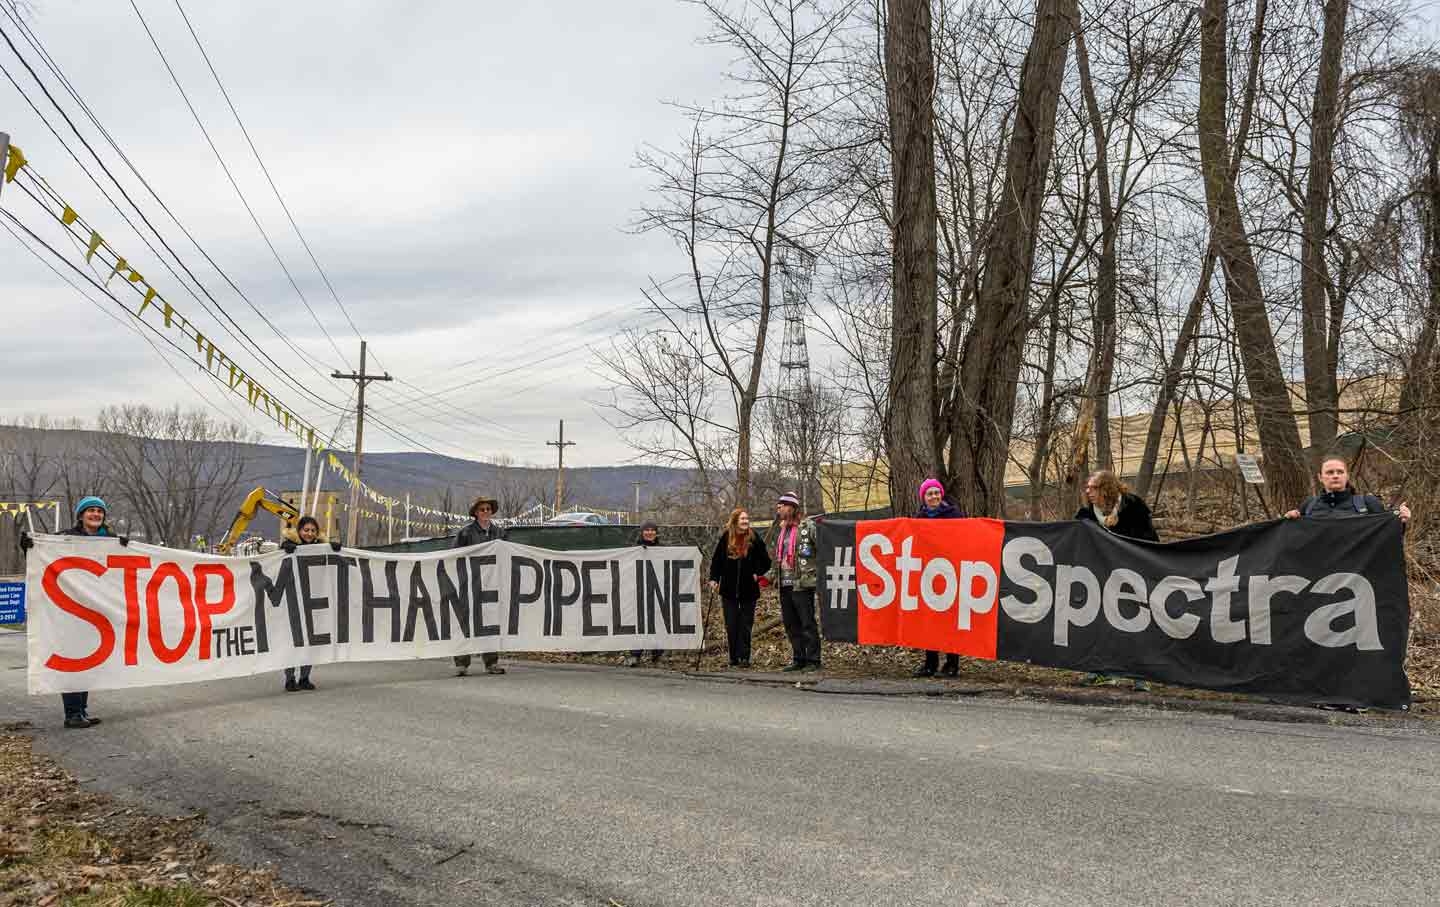 Spectra AIM pipeline protest